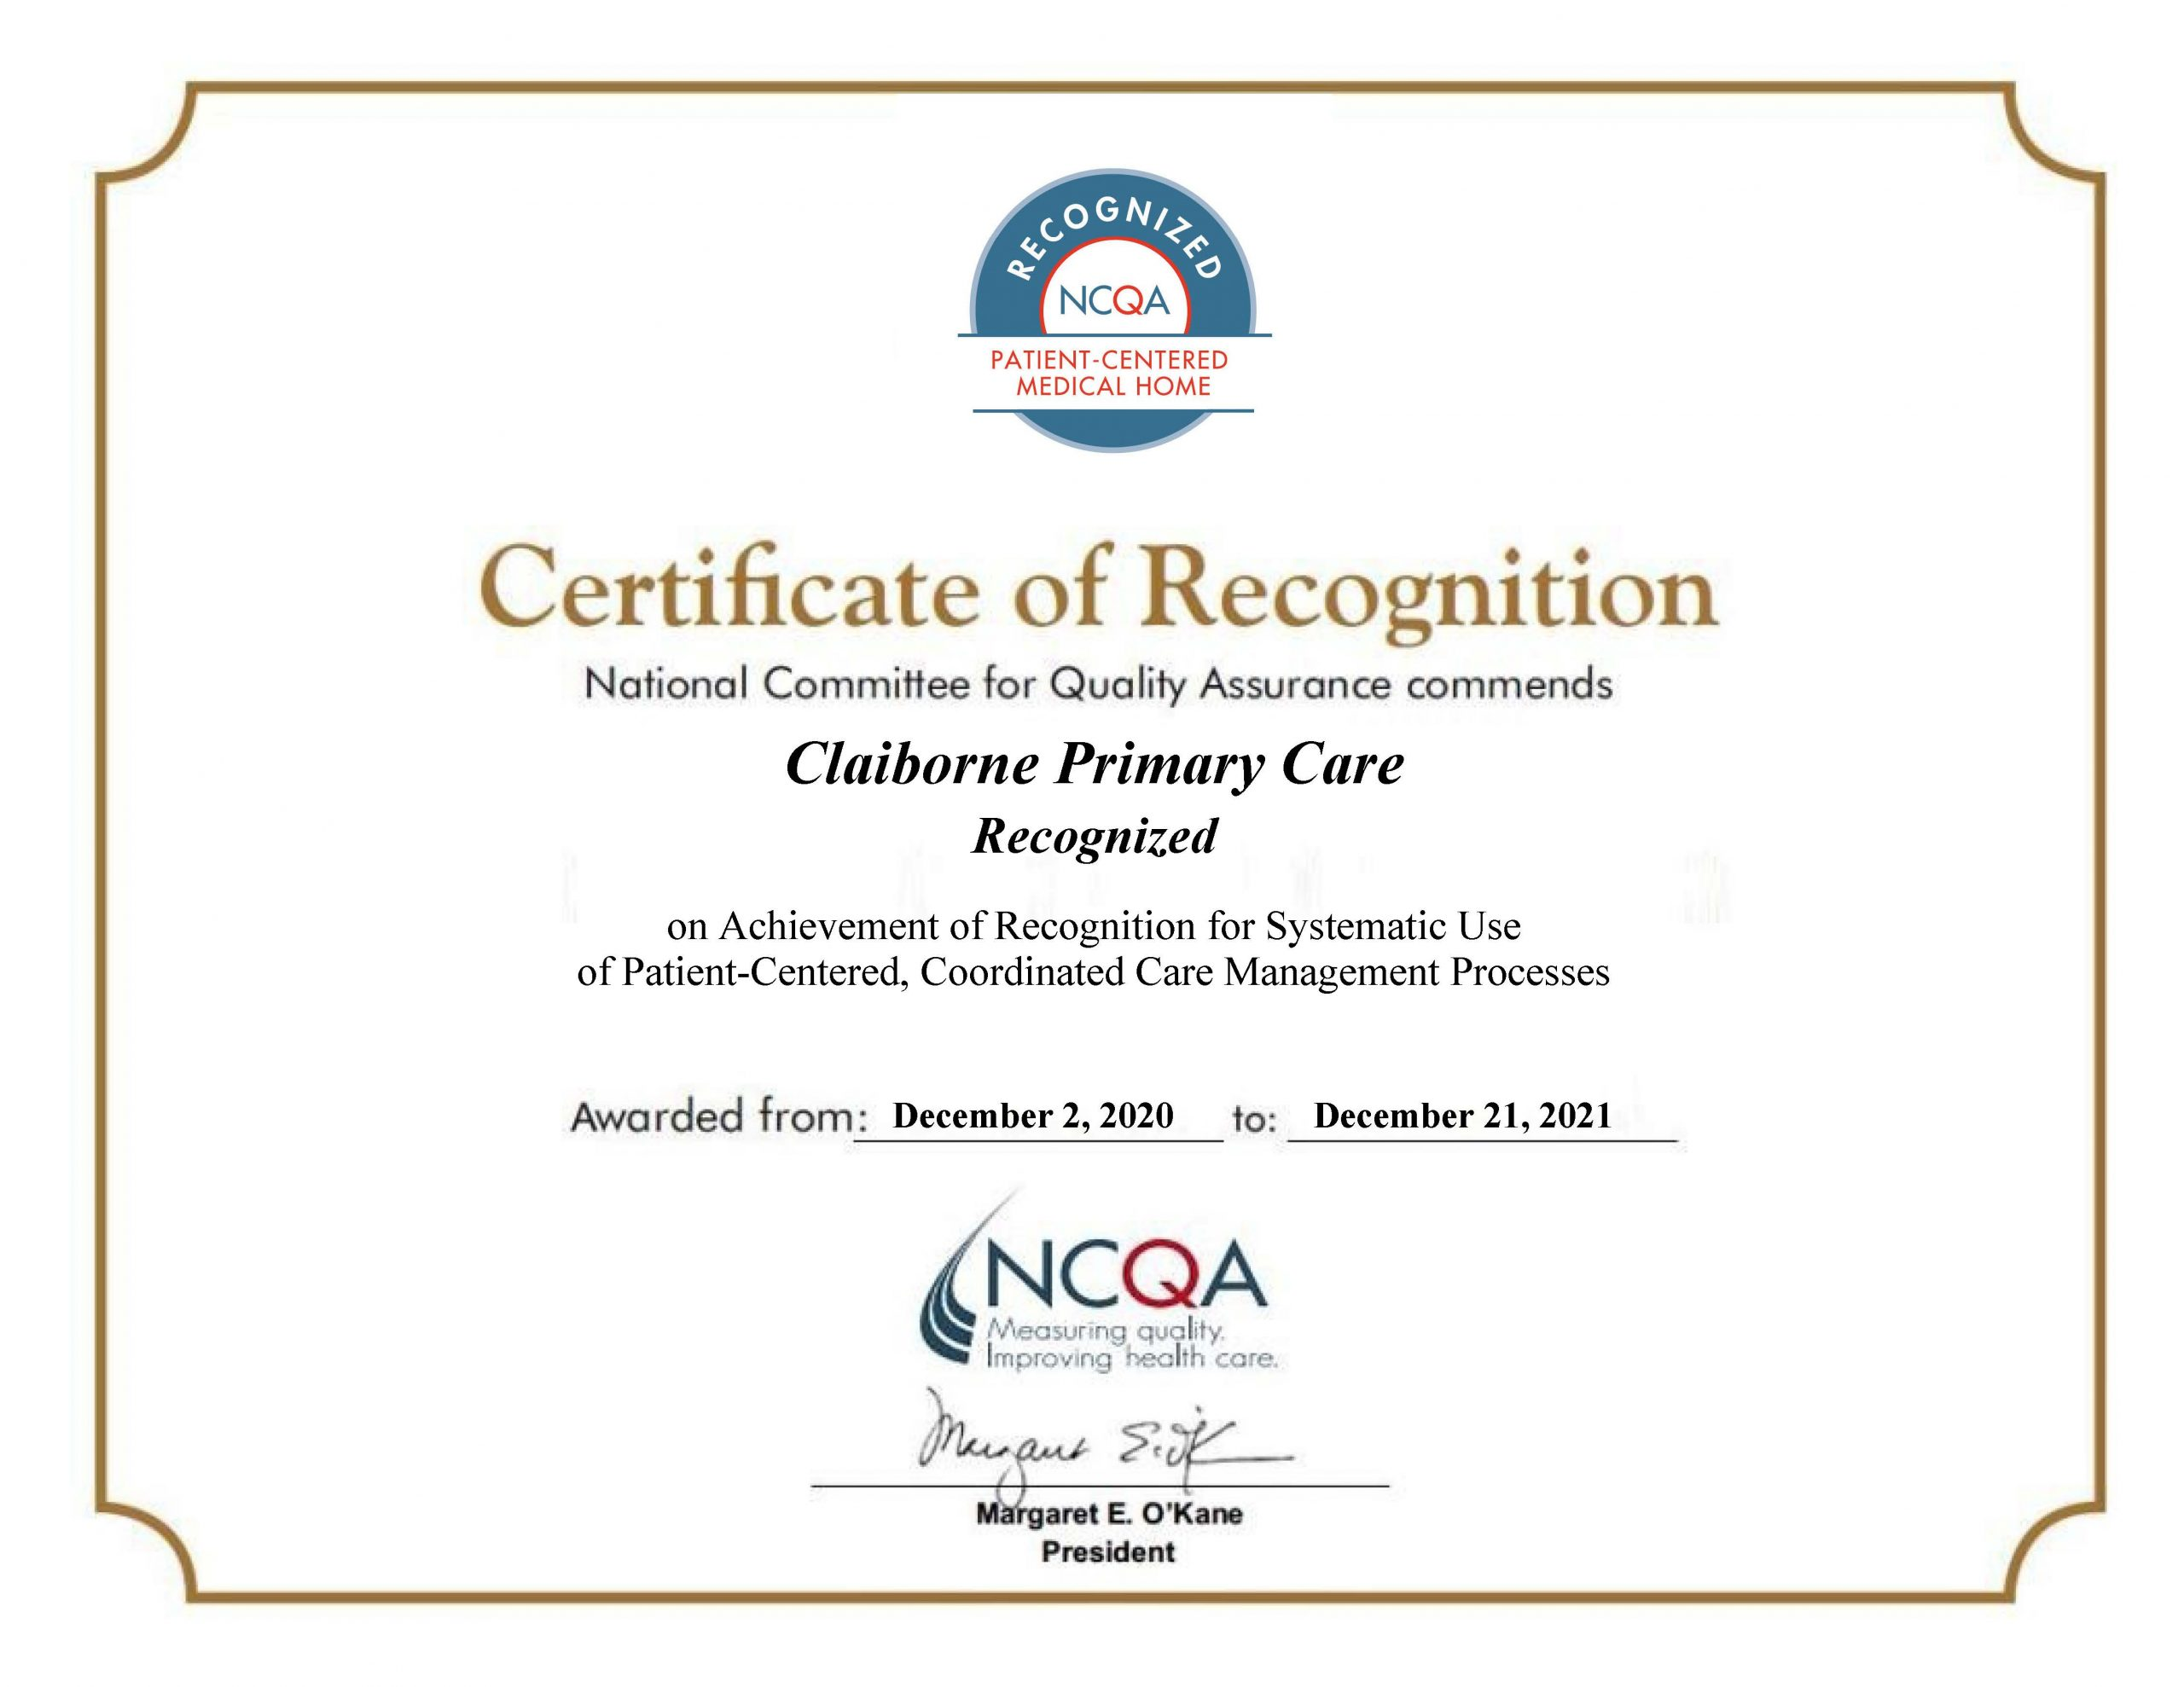 Claiborne Primary Care Recognized as a PCMH